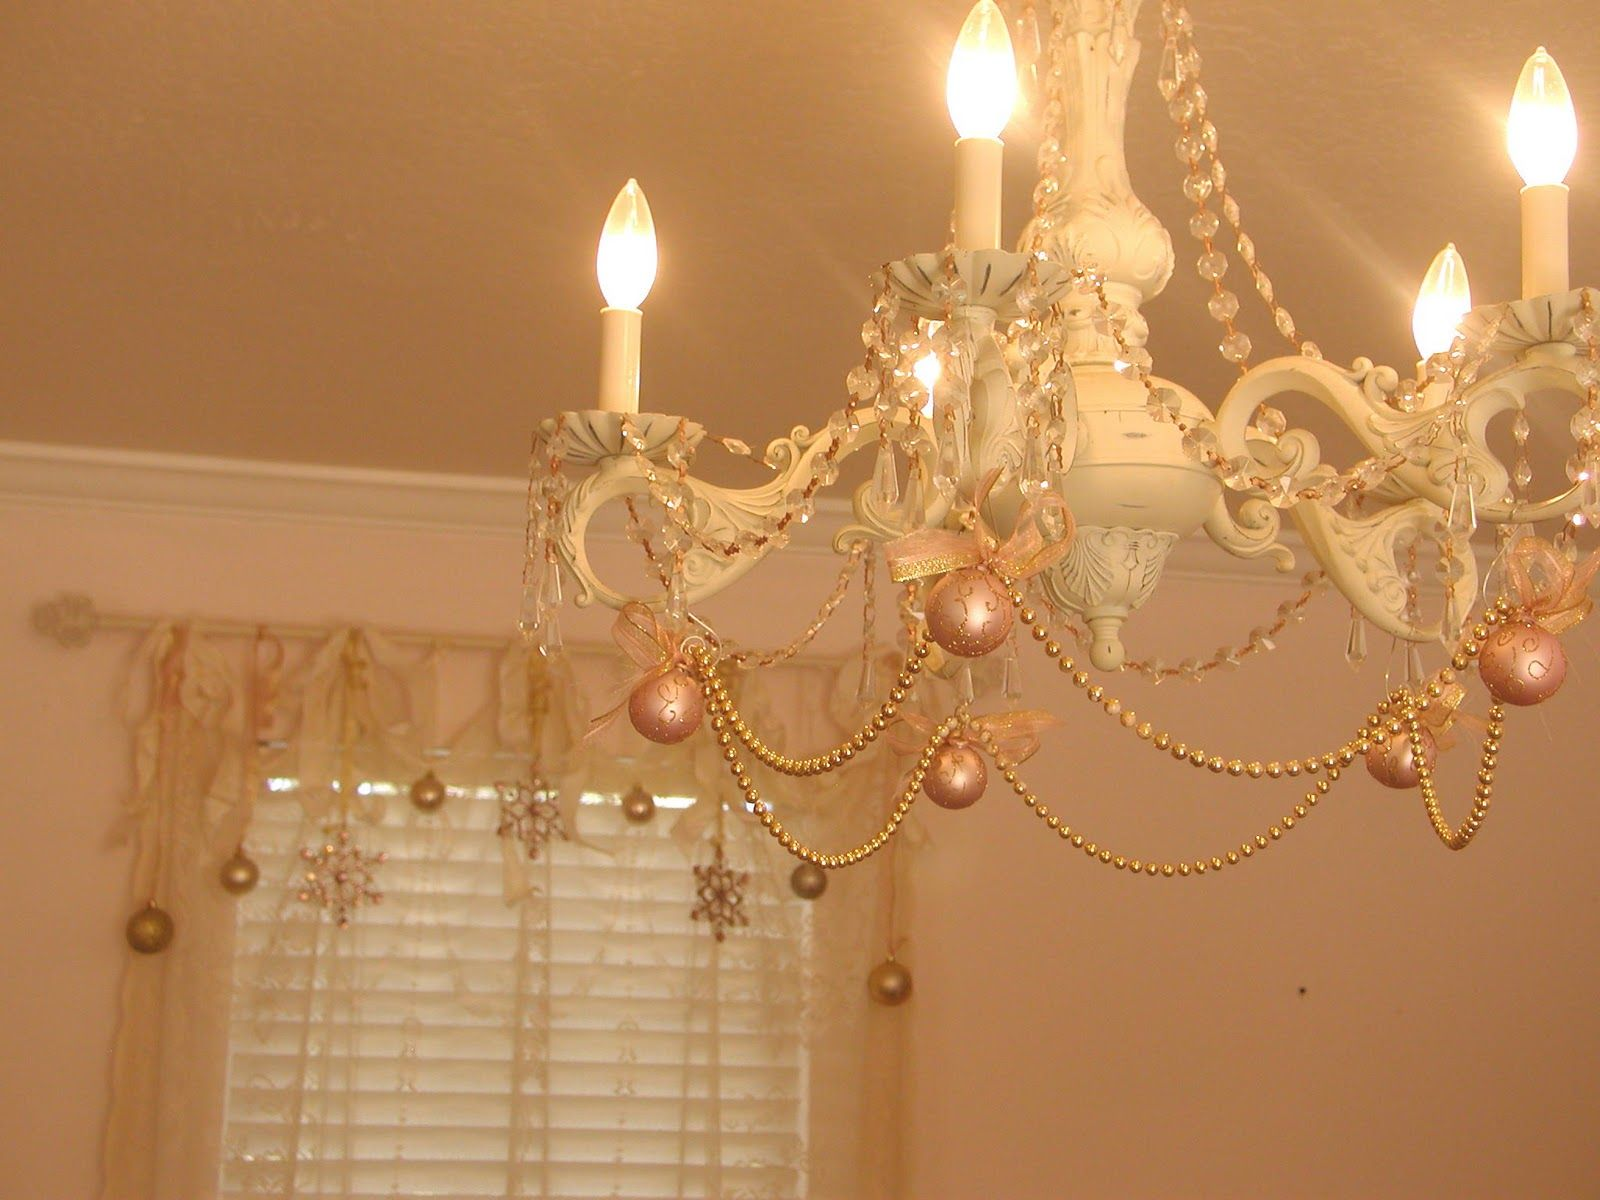 Chateau de fleurs champagne blush pink cream and gold - Blush pink christmas decorations ...